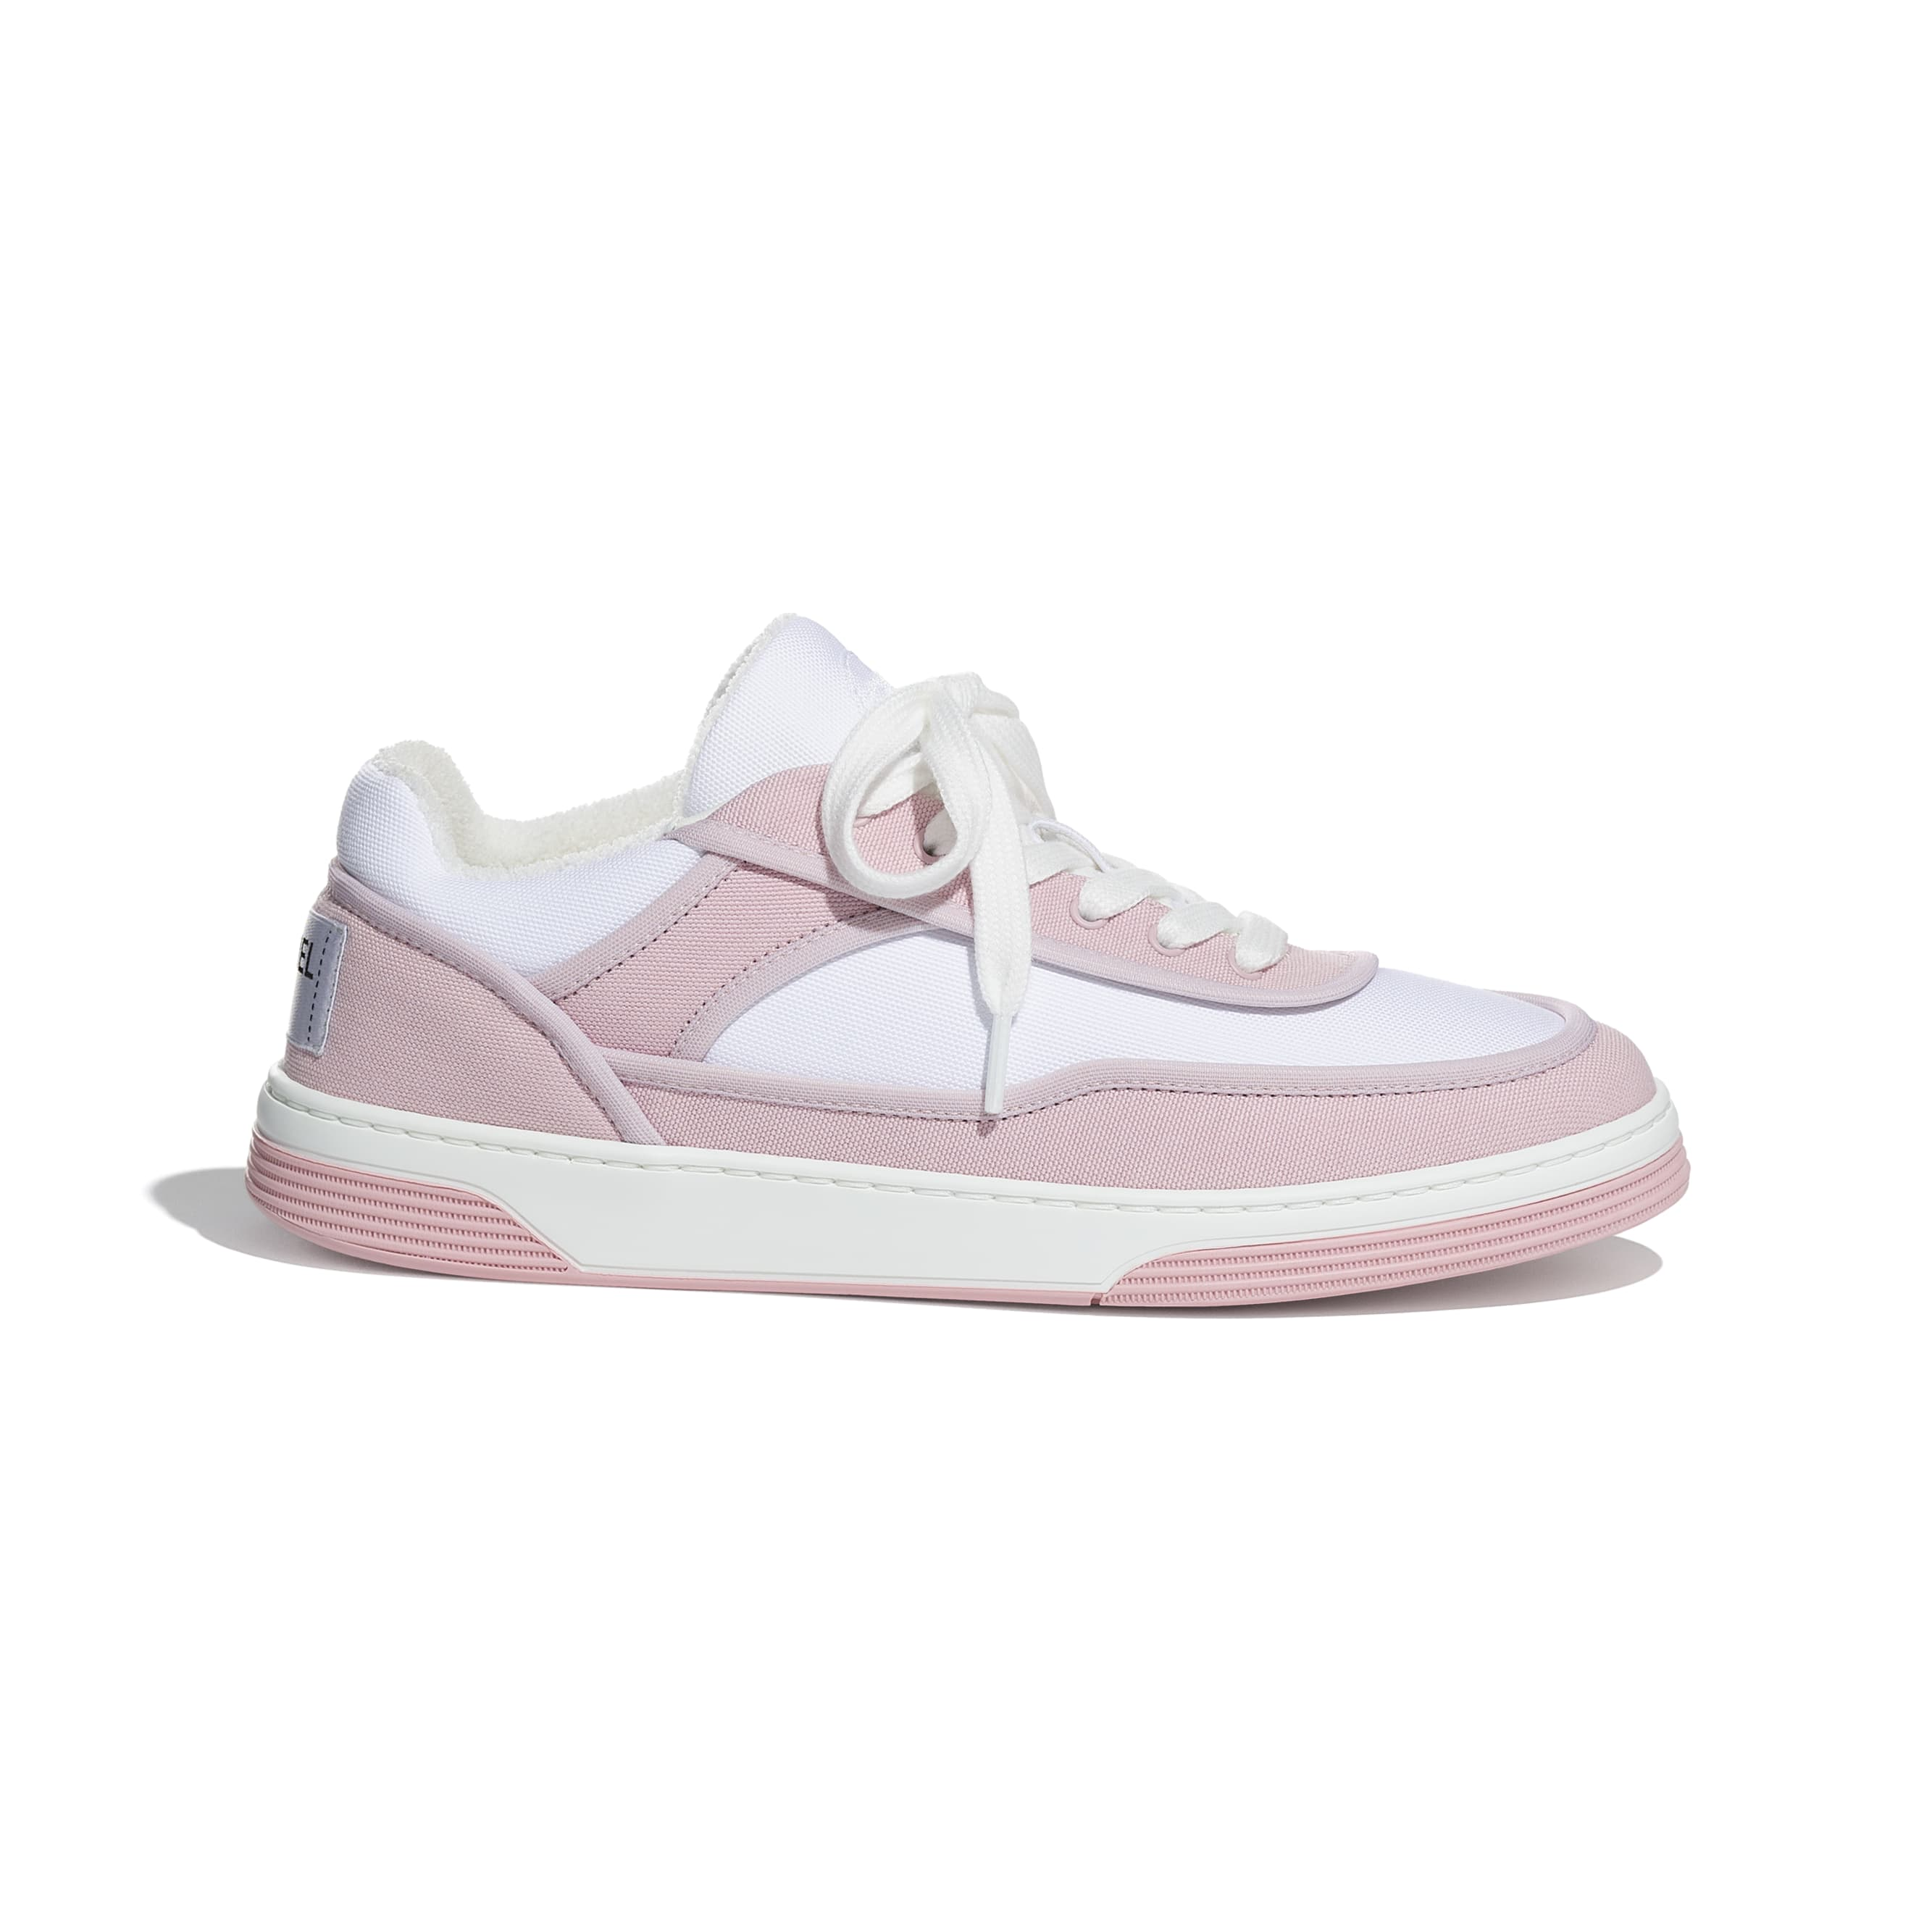 Trainers - Pink & White - Fabric - CHANEL - Default view - see standard sized version